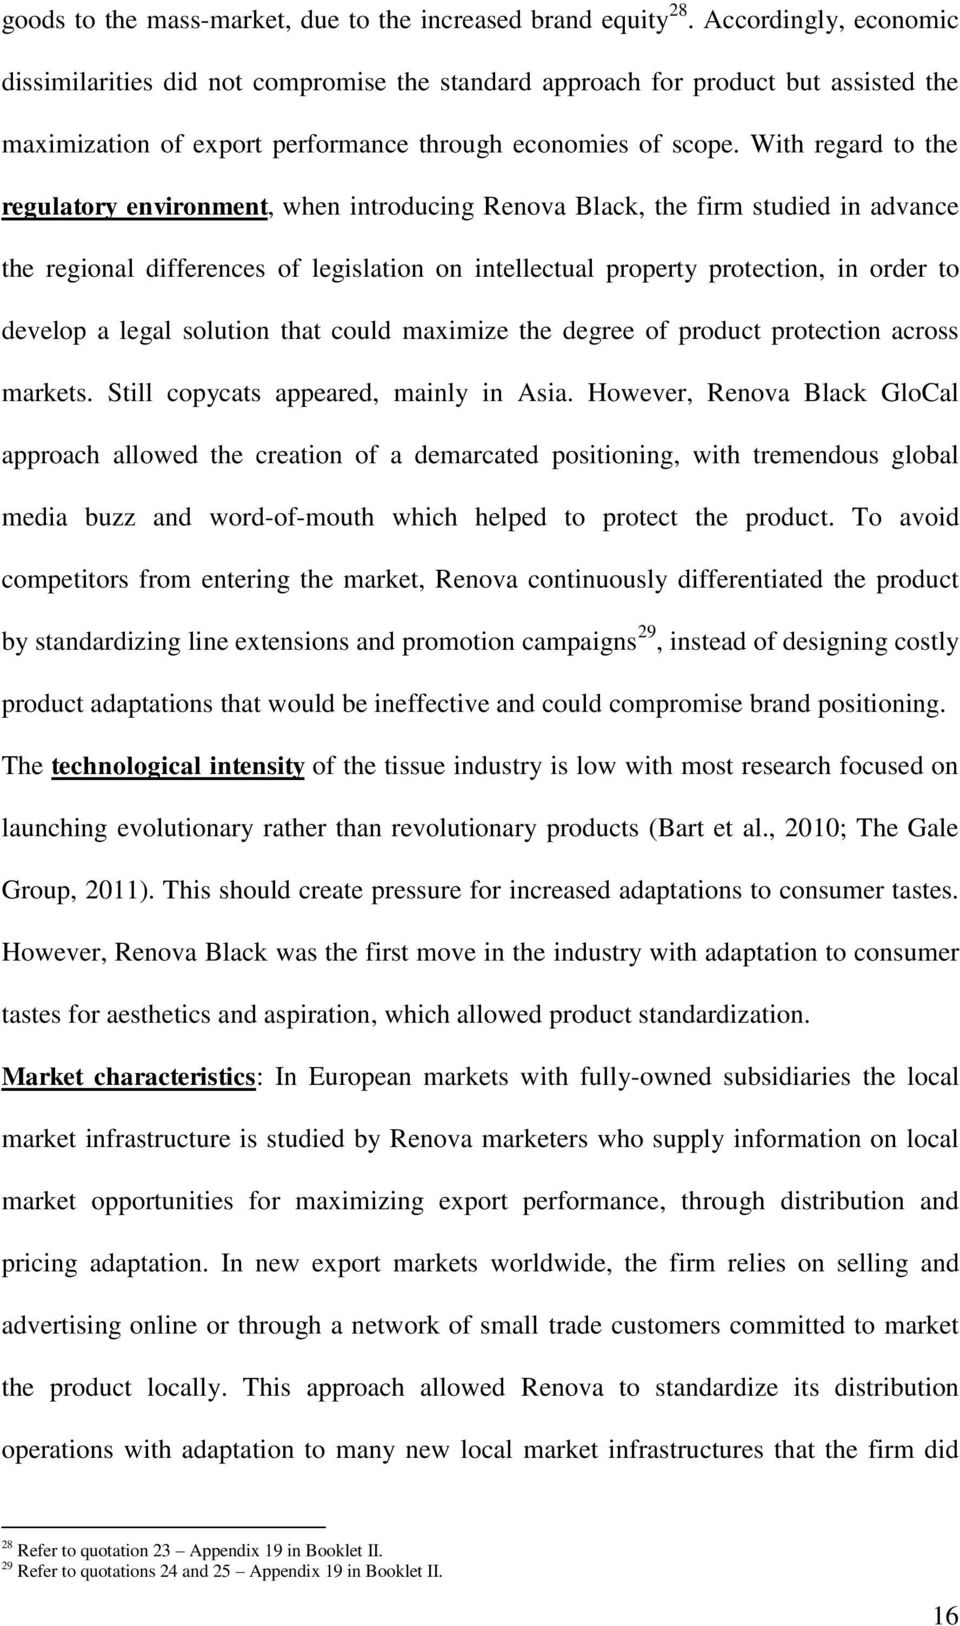 With regard to the regulatory environment, when introducing Renova Black, the firm studied in advance the regional differences of legislation on intellectual property protection, in order to develop